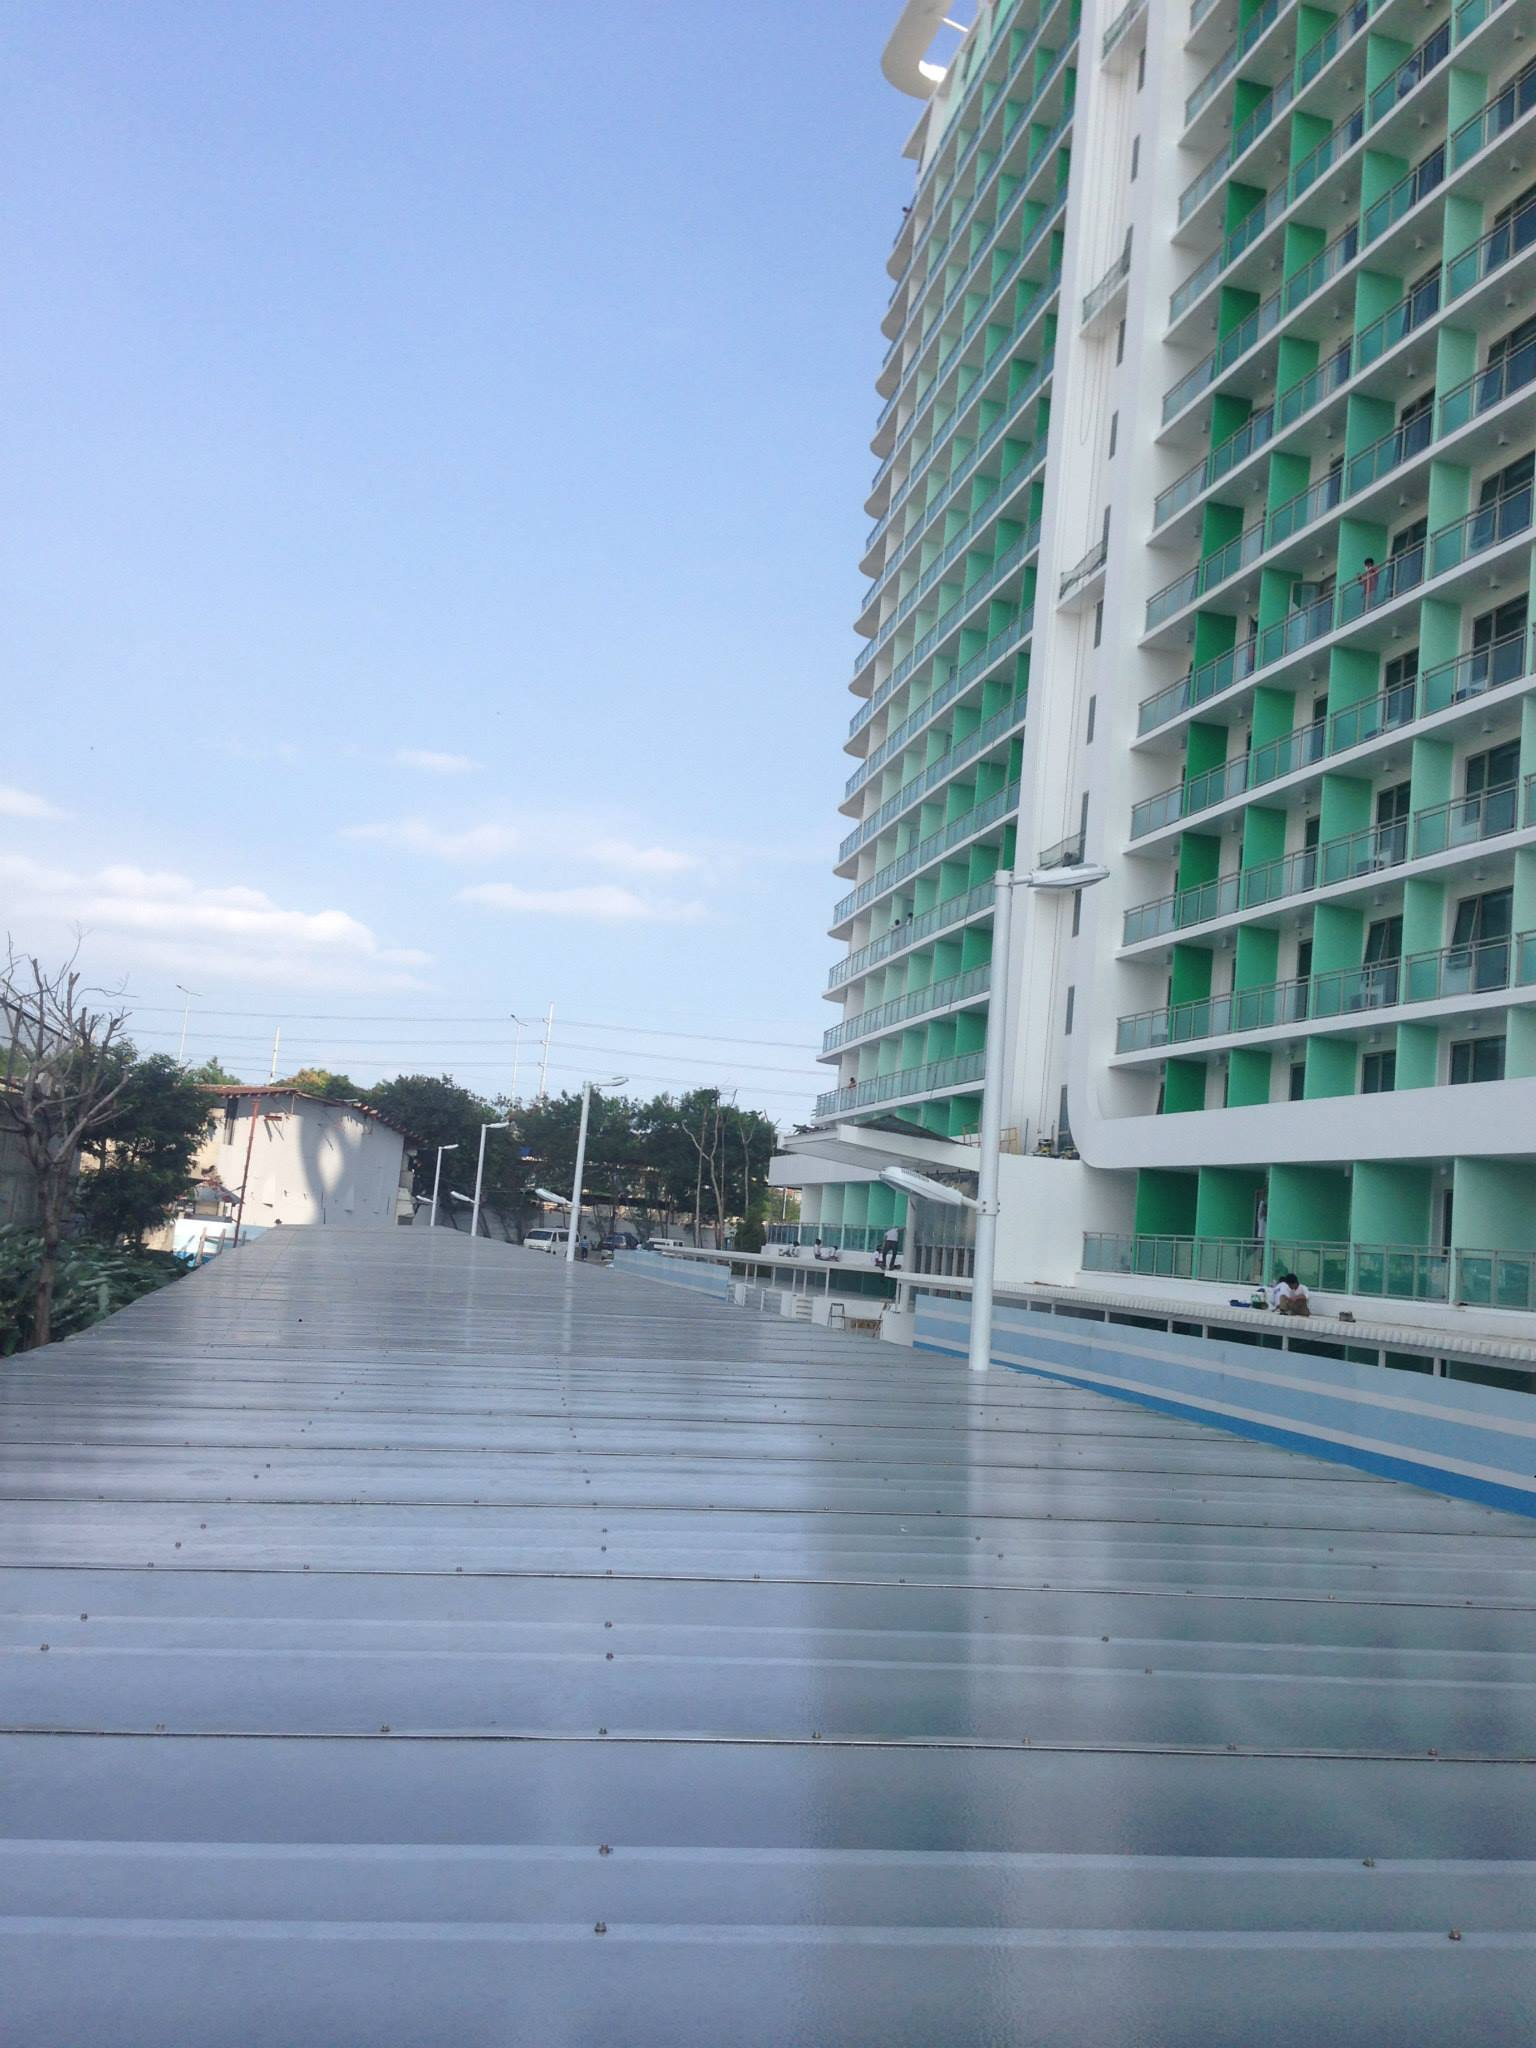 polycarbonate-solid-sheet-philippines-condo-roofing-design-installation-6